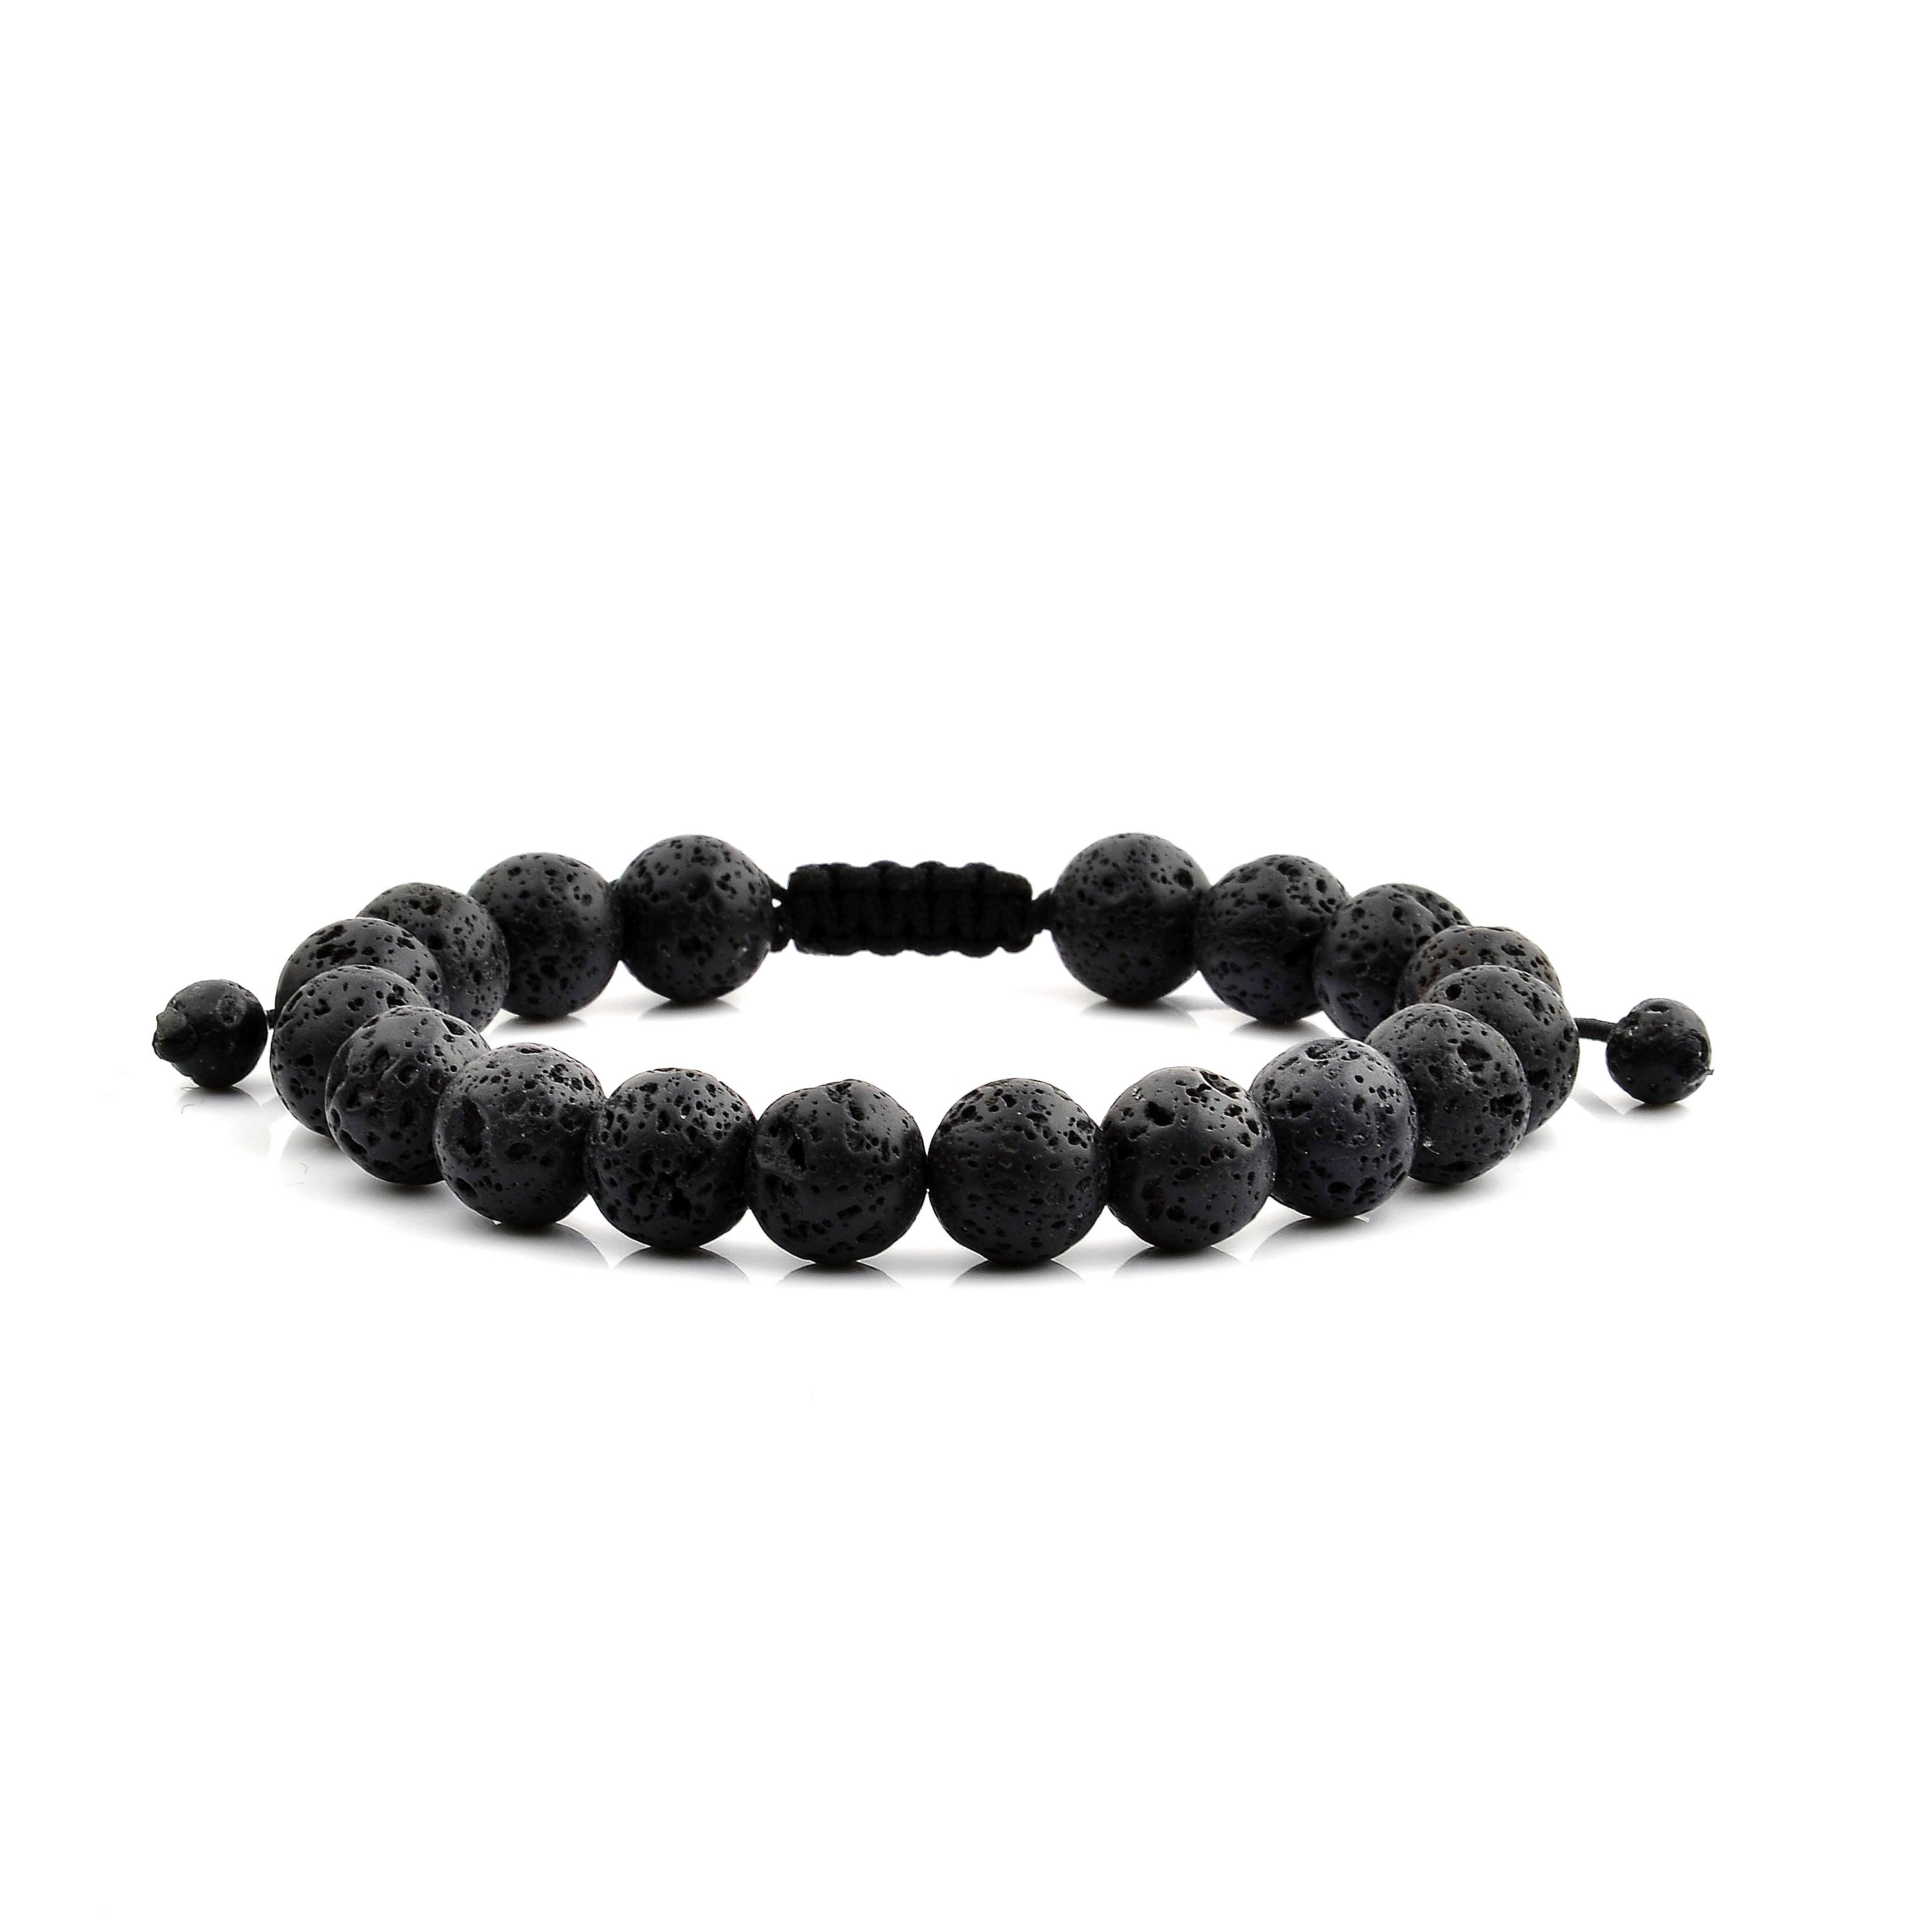 beaded buddha bangle beads jewelry boys men natural bracelets stone hand product black couple mens bracelet gift